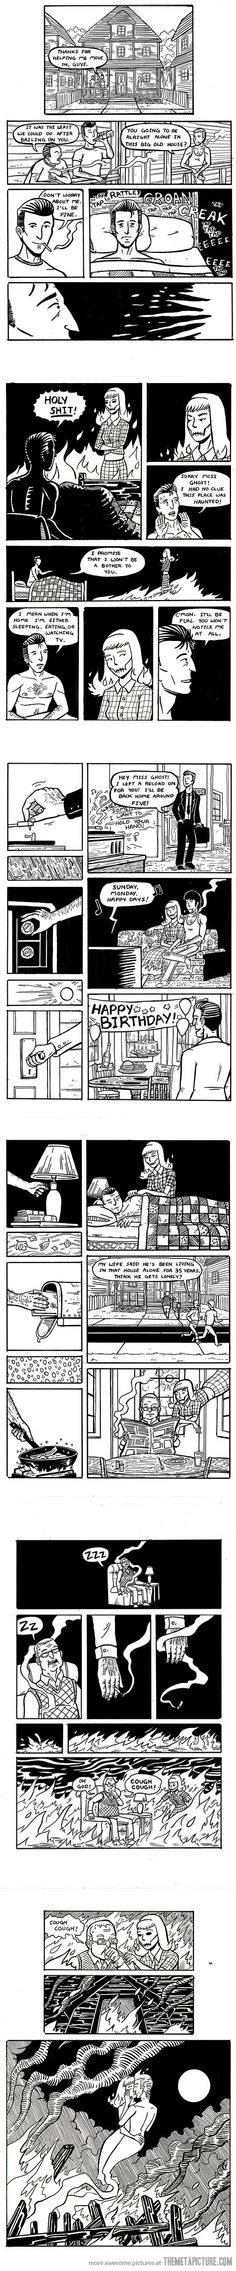 Funny pictures about The Man Who Lives Alone. Oh, and cool pics about The Man Who Lives Alone. Also, The Man Who Lives Alone. Cute Comics, Funny Comics, Sad Comics, Cute Stories, Short Stories, Matsuri Hino, Living Alone, Comics Story, Me Anime